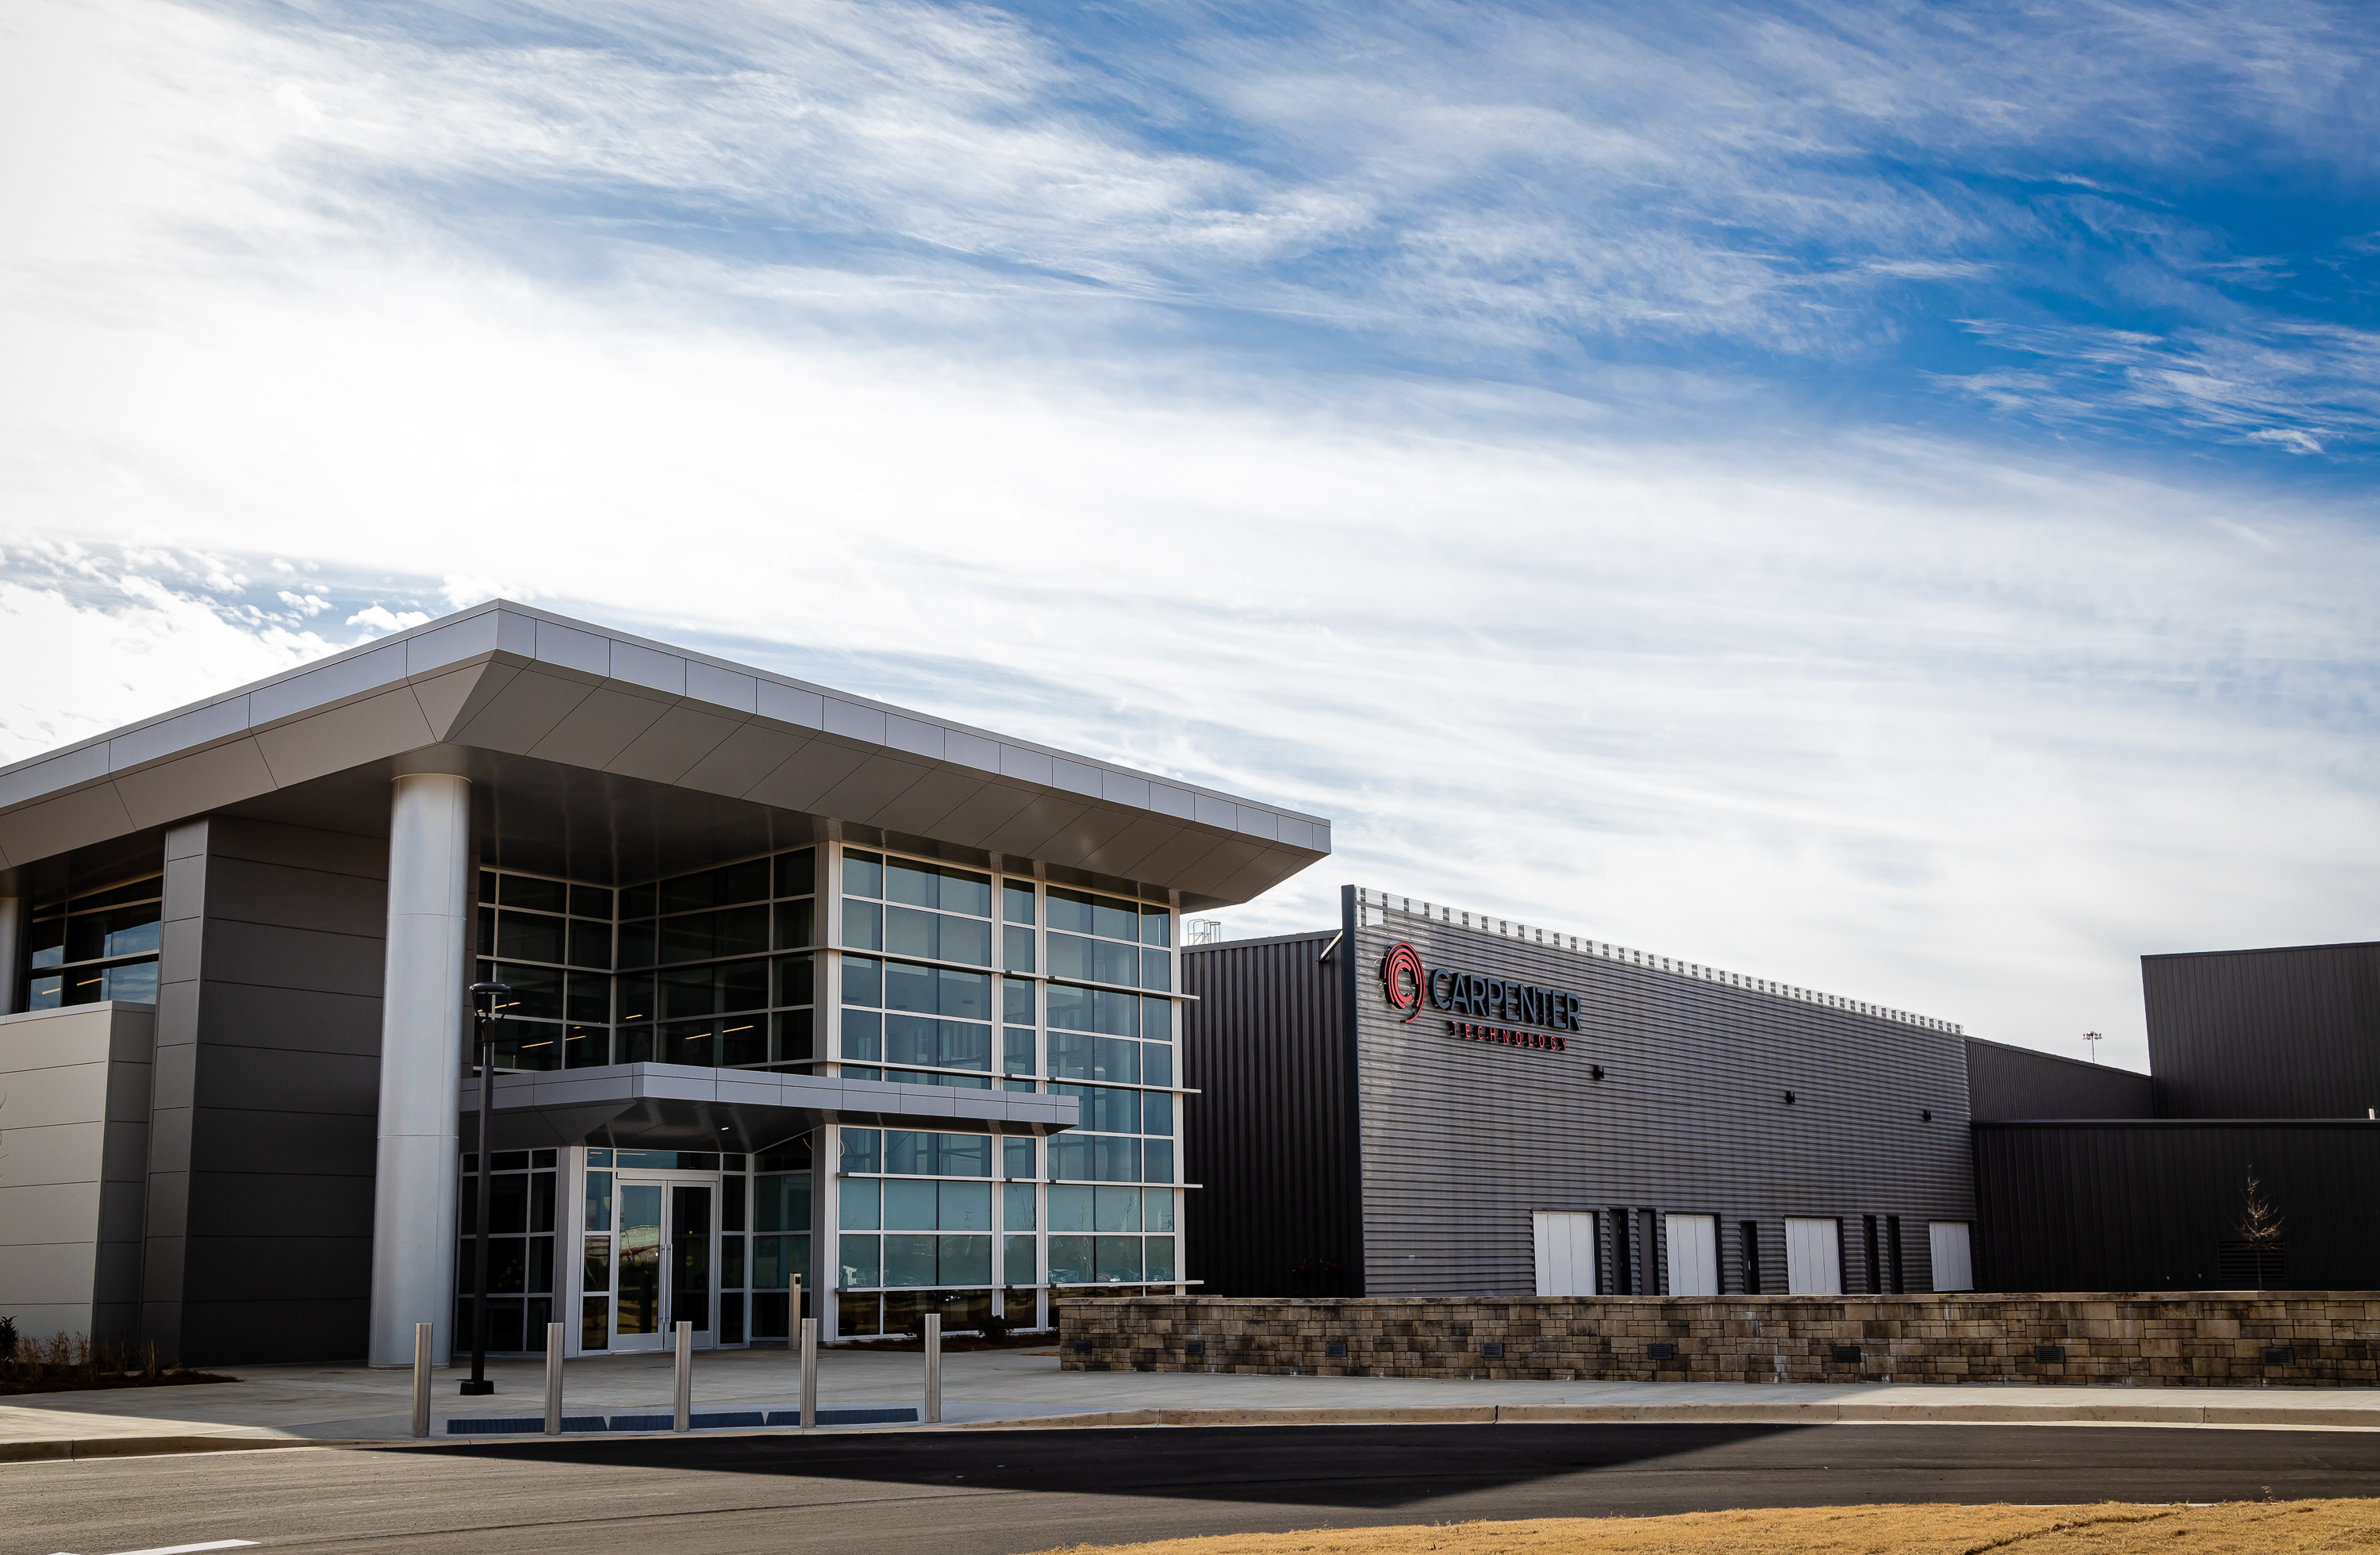 The Emerging Technology Center (ETC), in Athens, Alabama. Photo via Carpenter Technology.